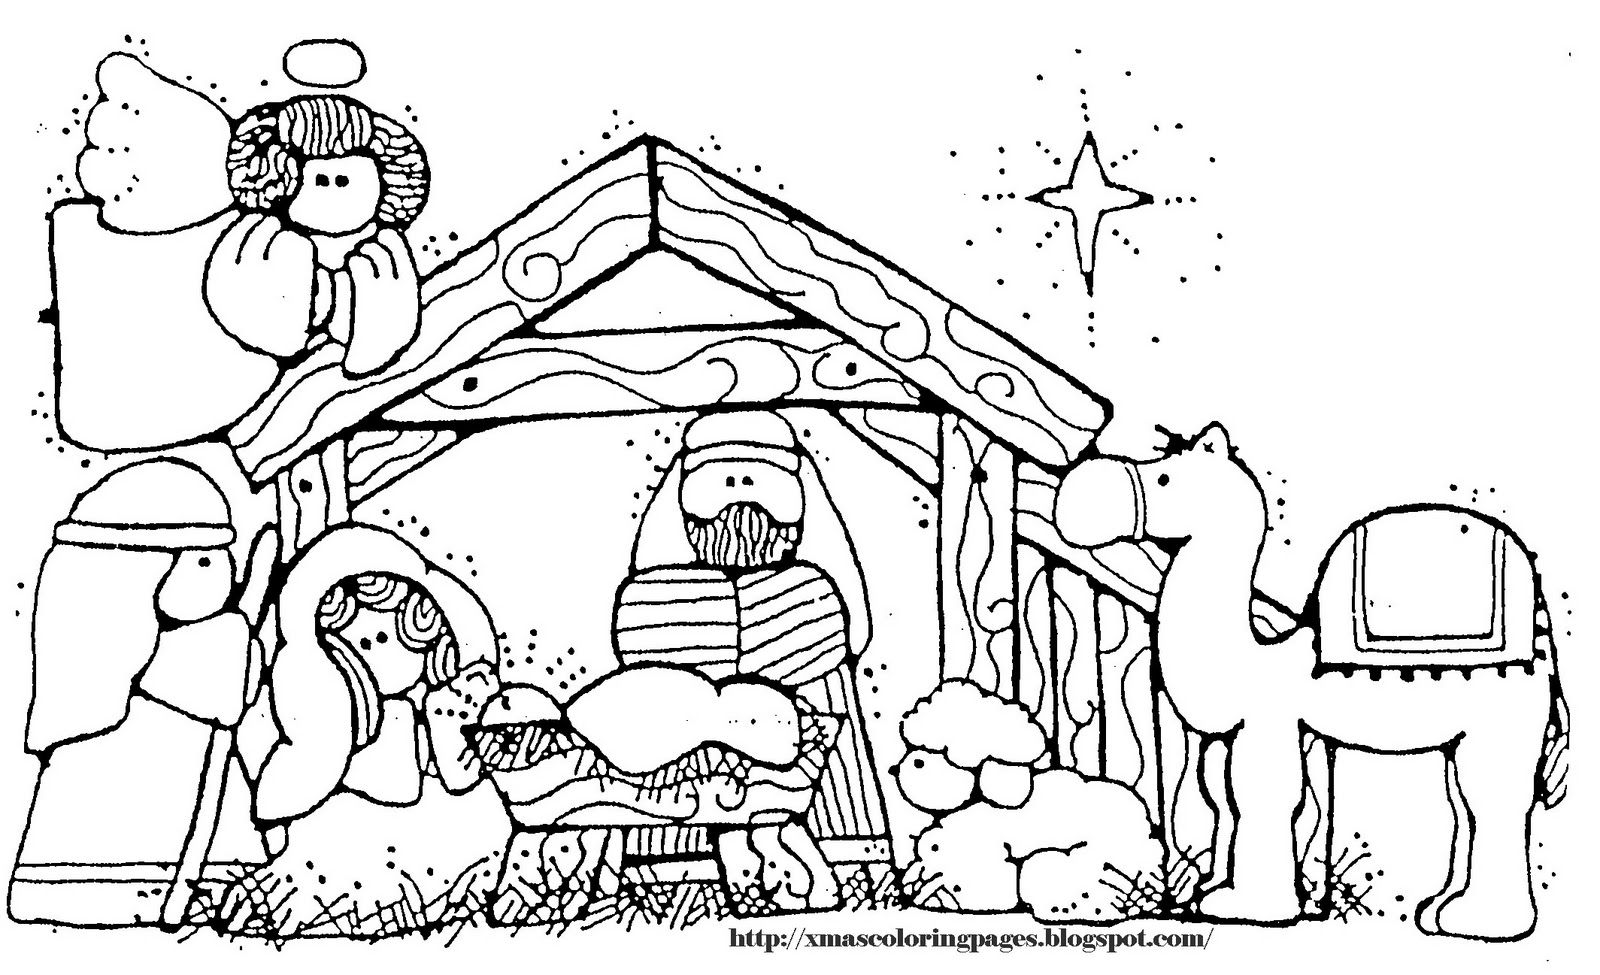 Christmas Coloring Nativity With Pictures For You To Print And Color Here Are Five